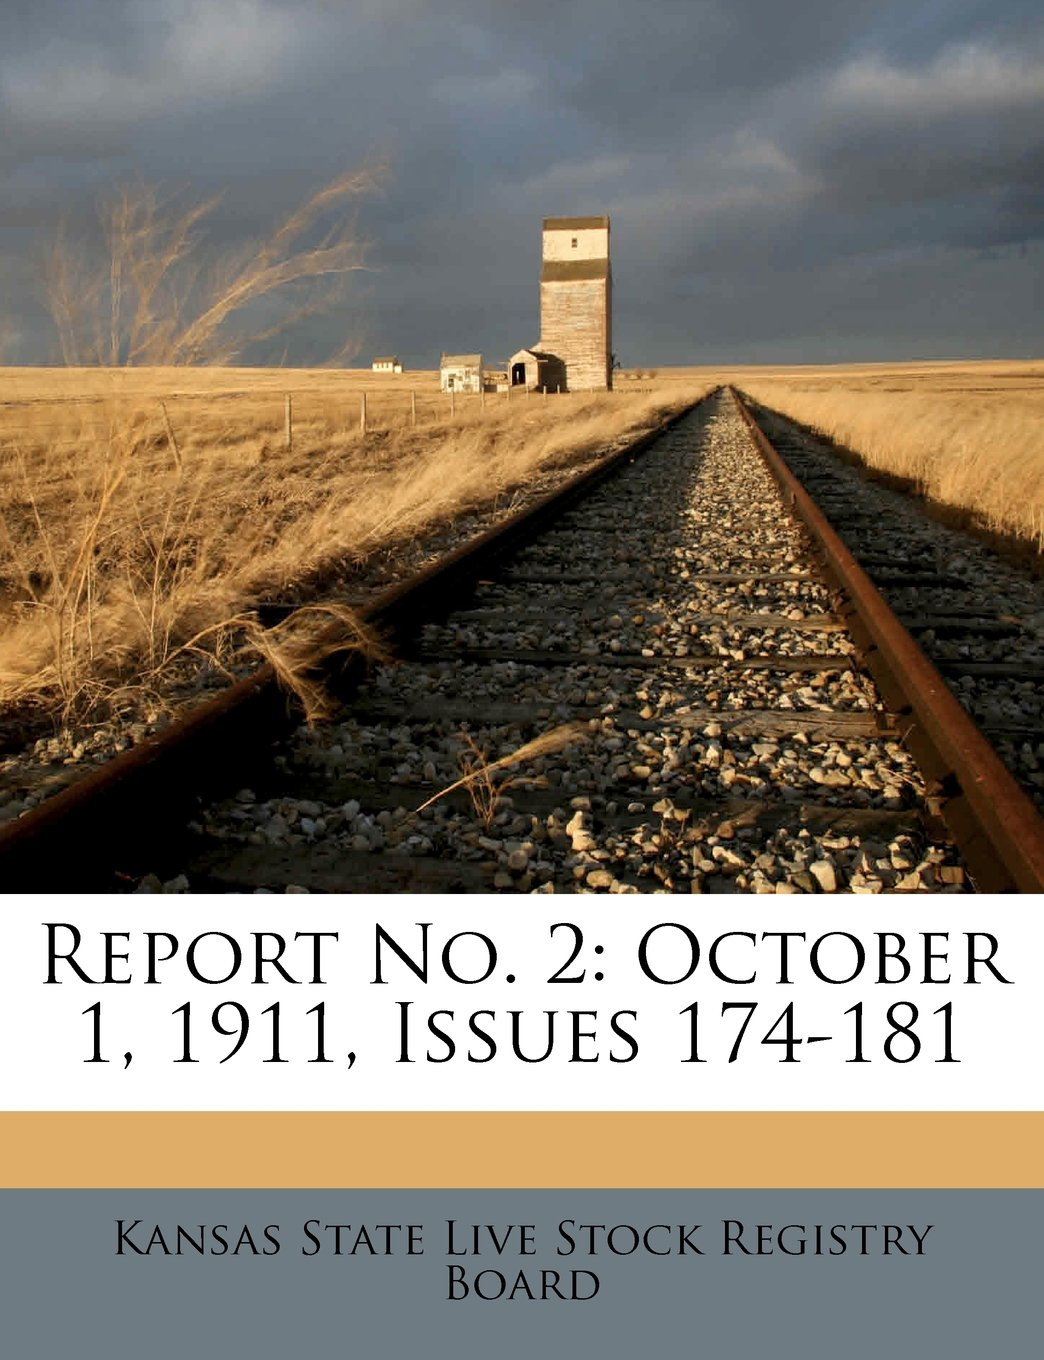 Report No  2: October 1, 1911, Issues 174-181: Kansas State